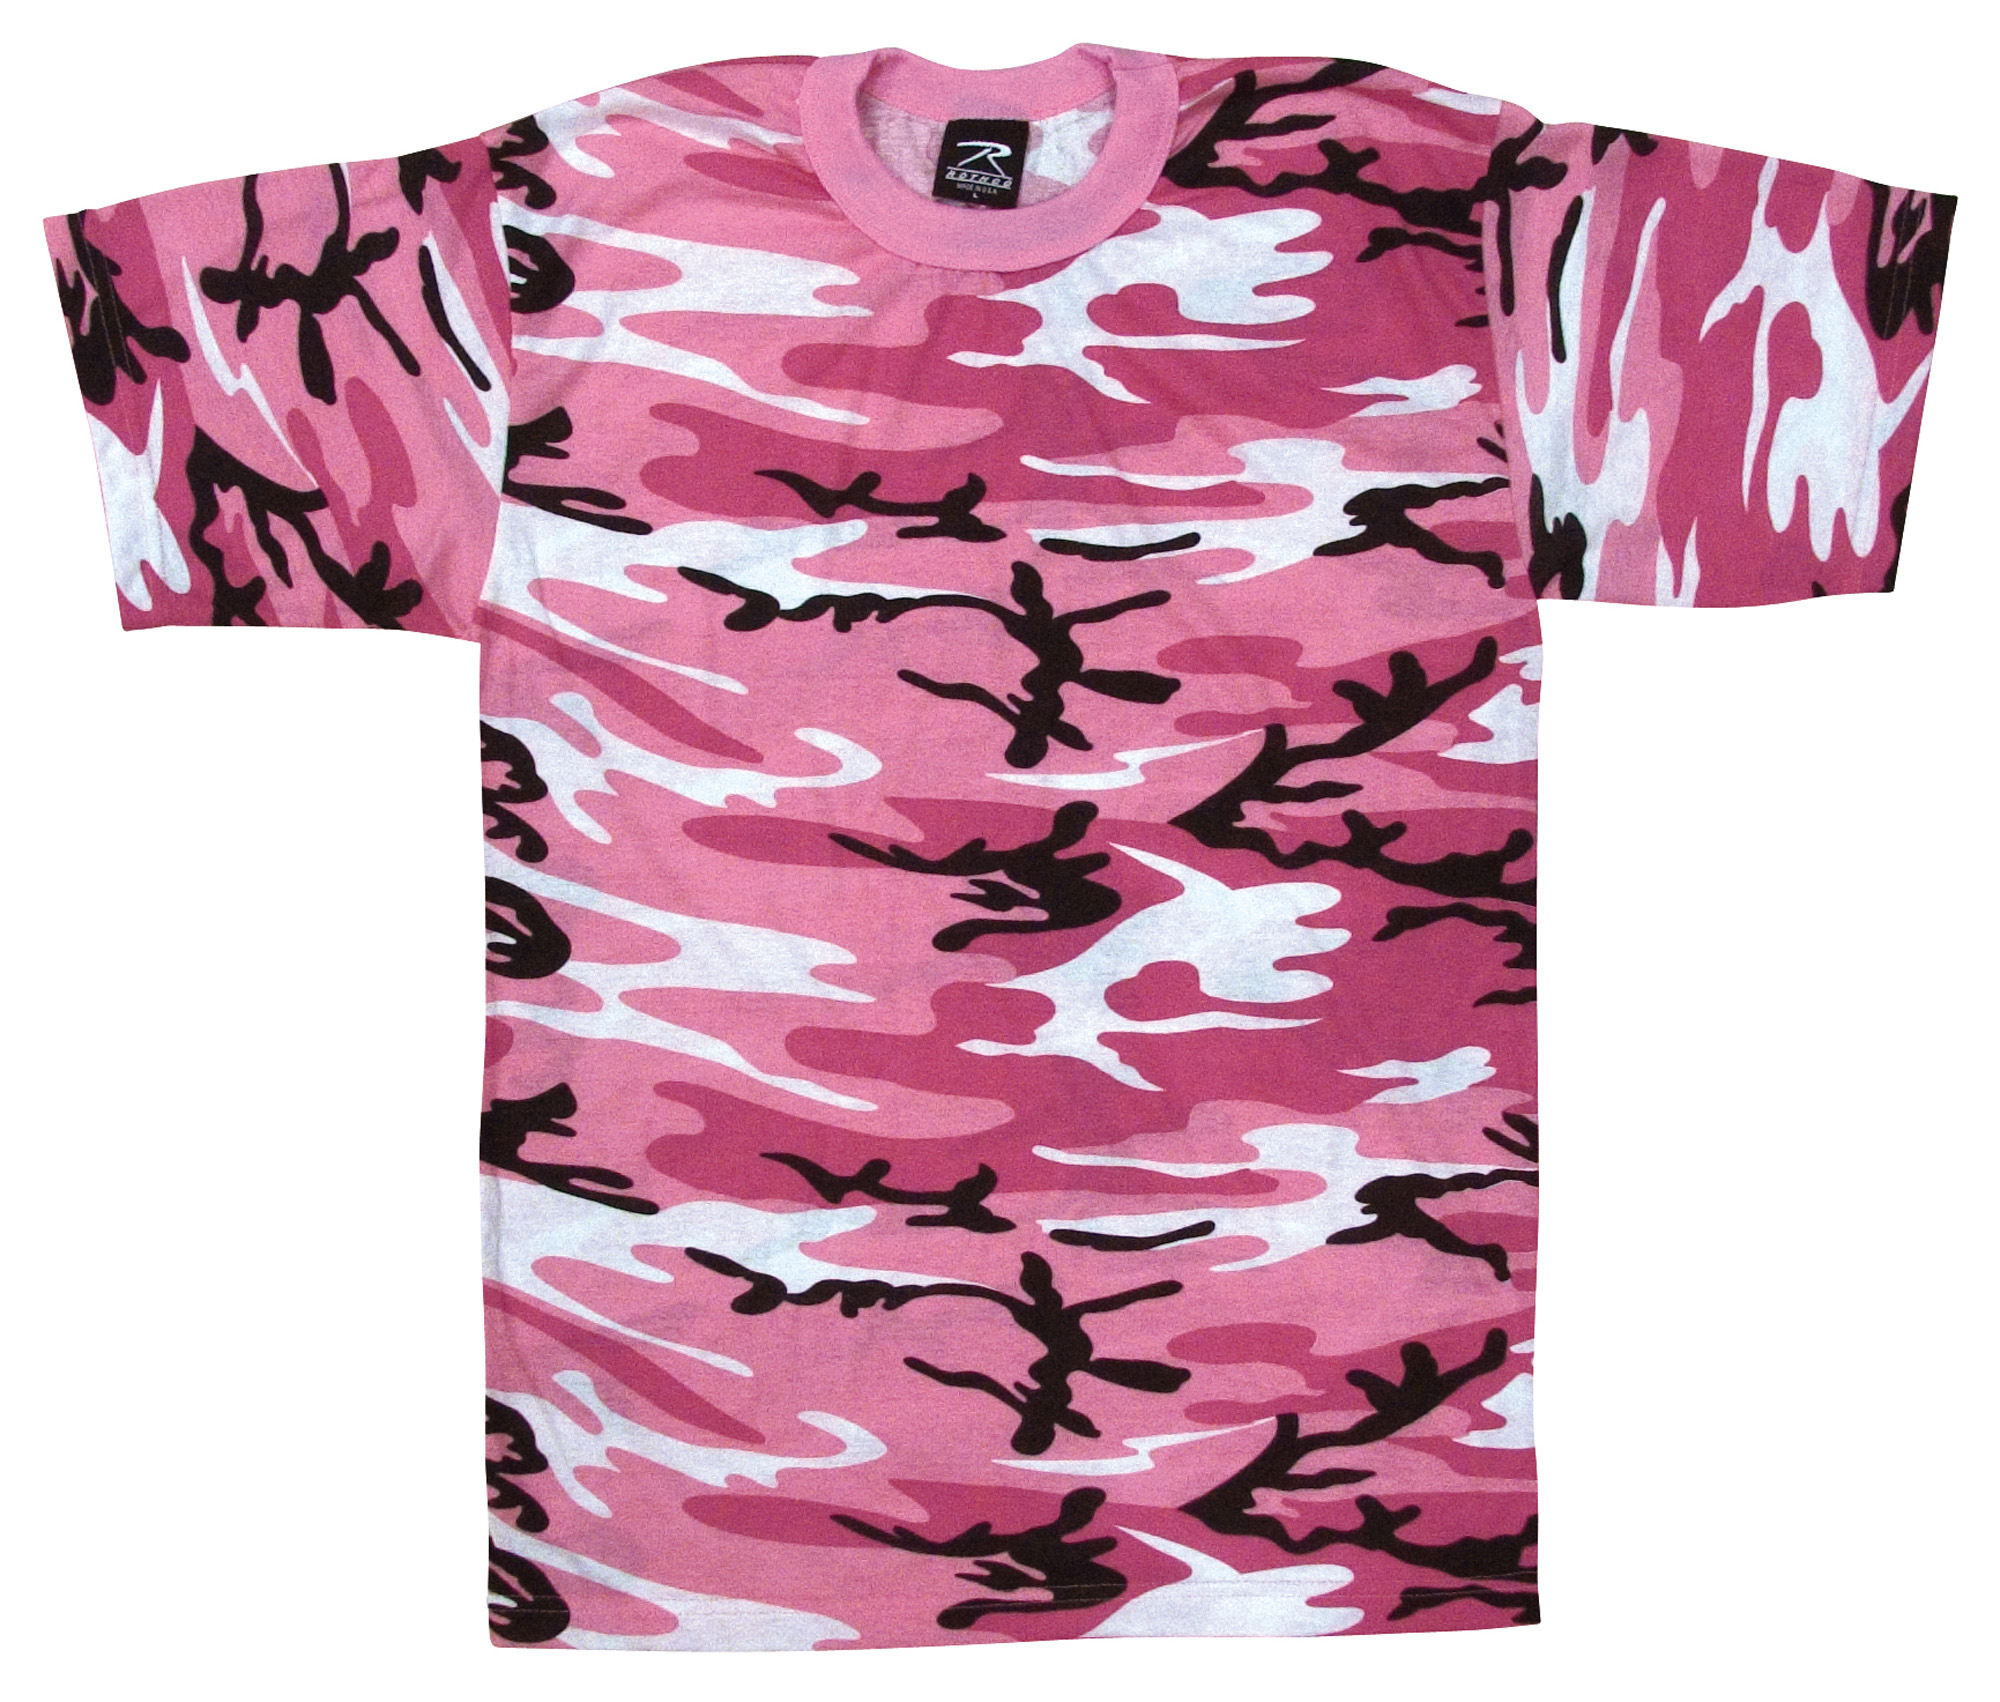 ROTHCO T-SHIRT - PINK CAMO 4X - All Pro OutfittersAll Pro ...